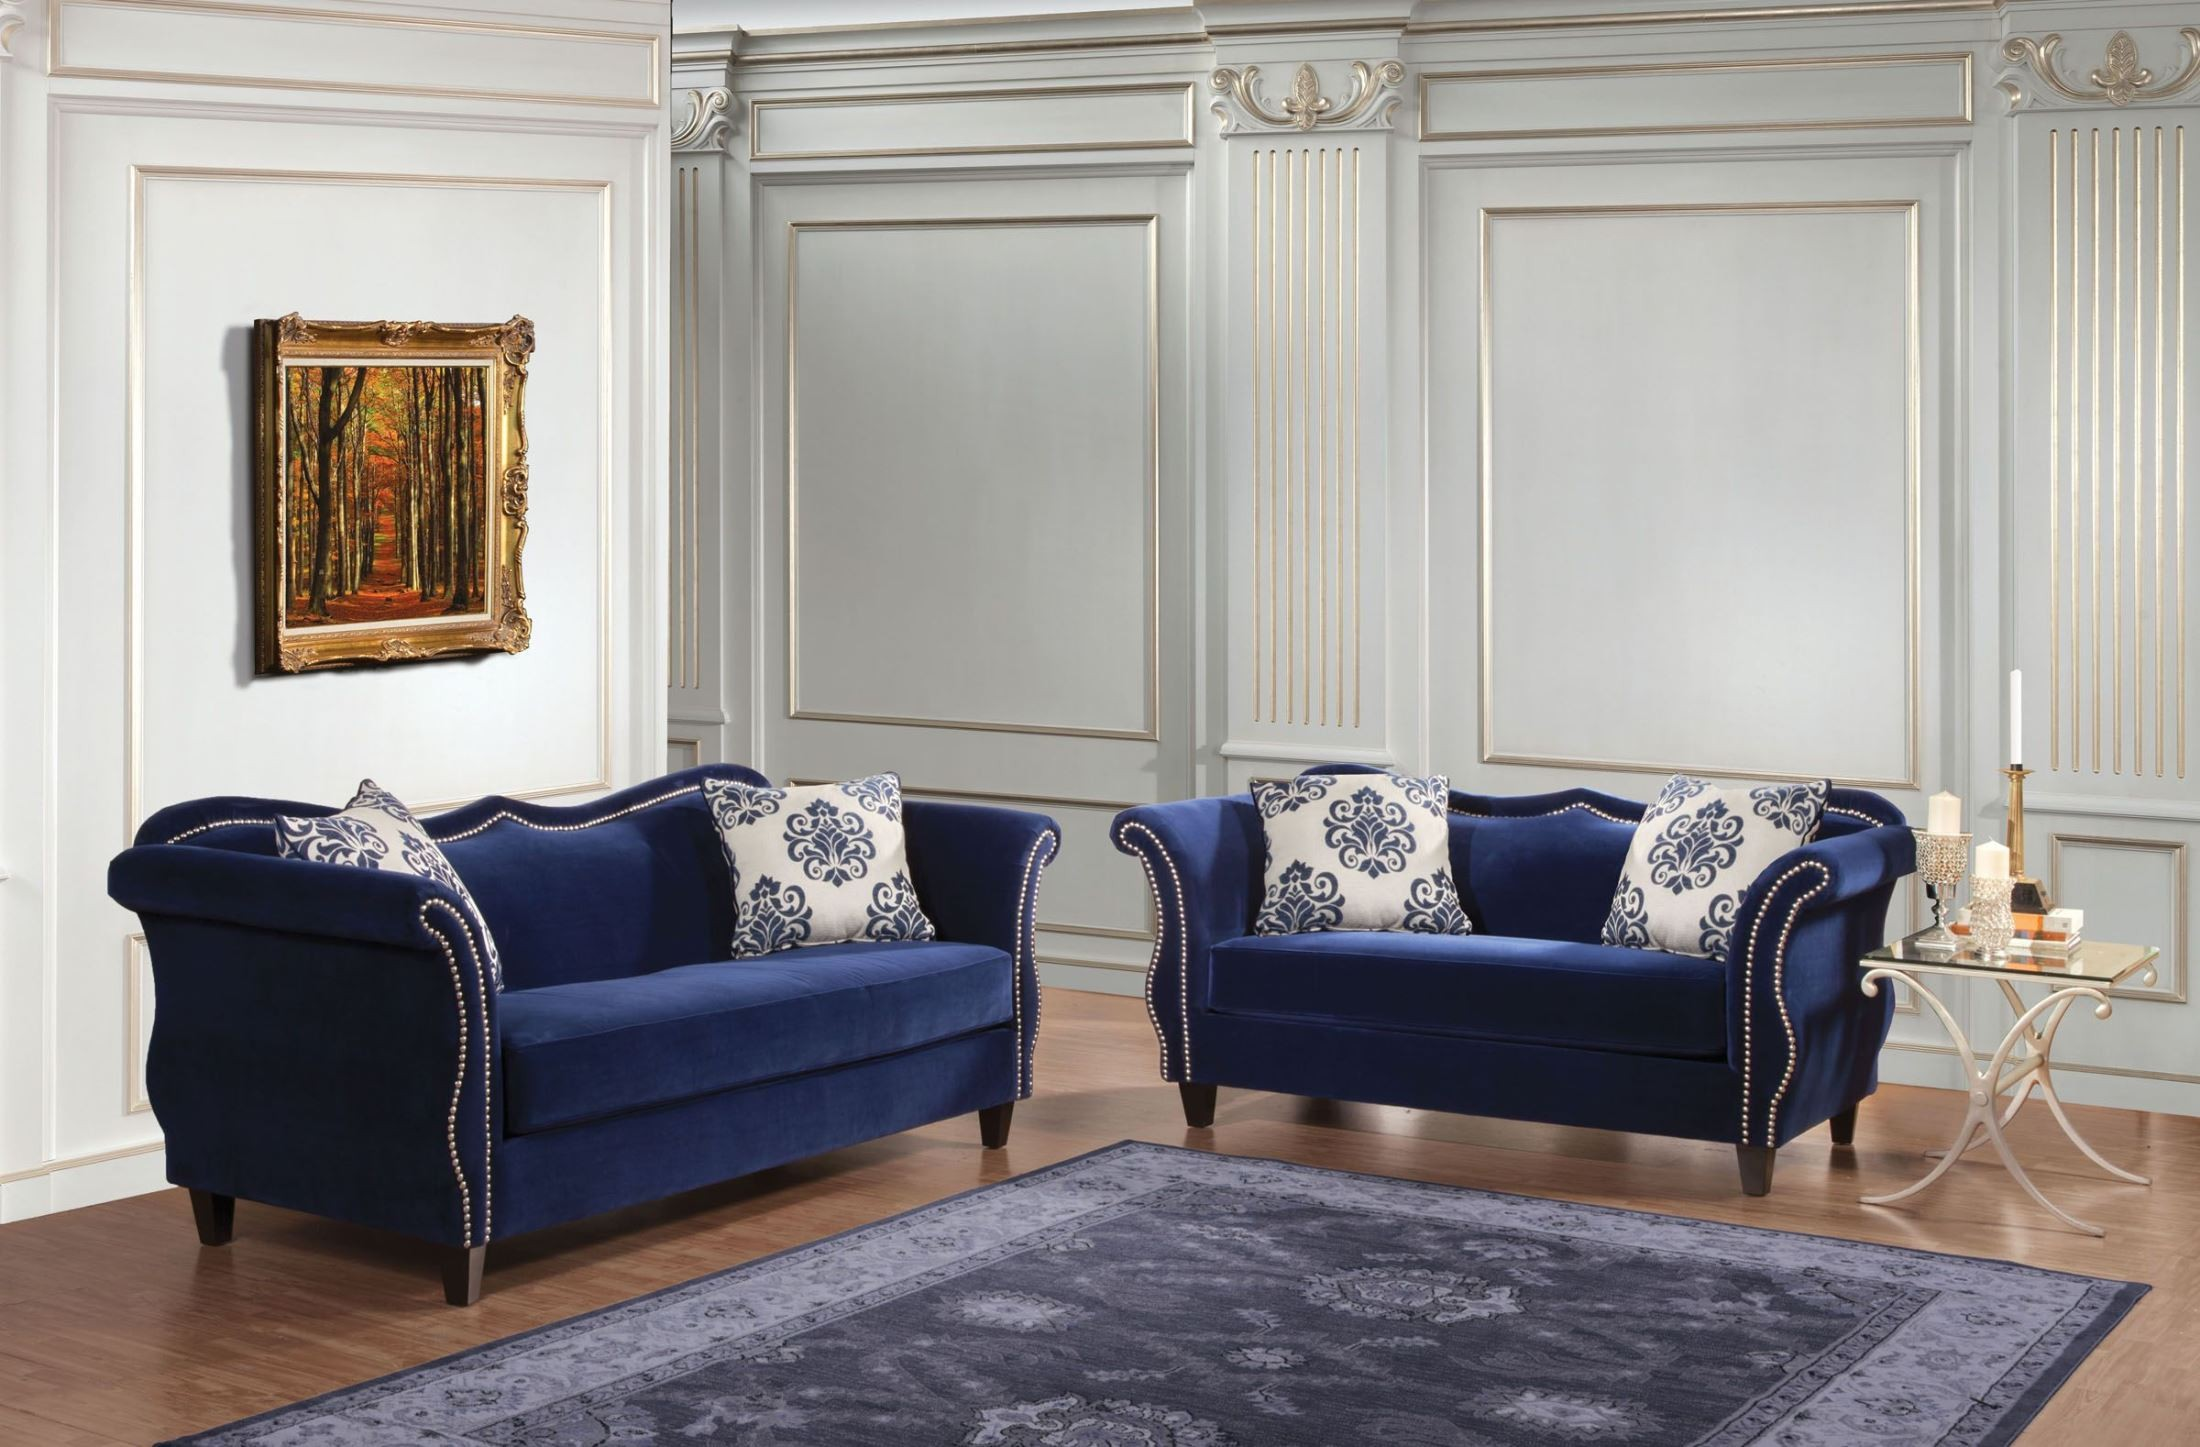 Zaffiro royal blue living room set sm2231 sf furniture Living room sofa set